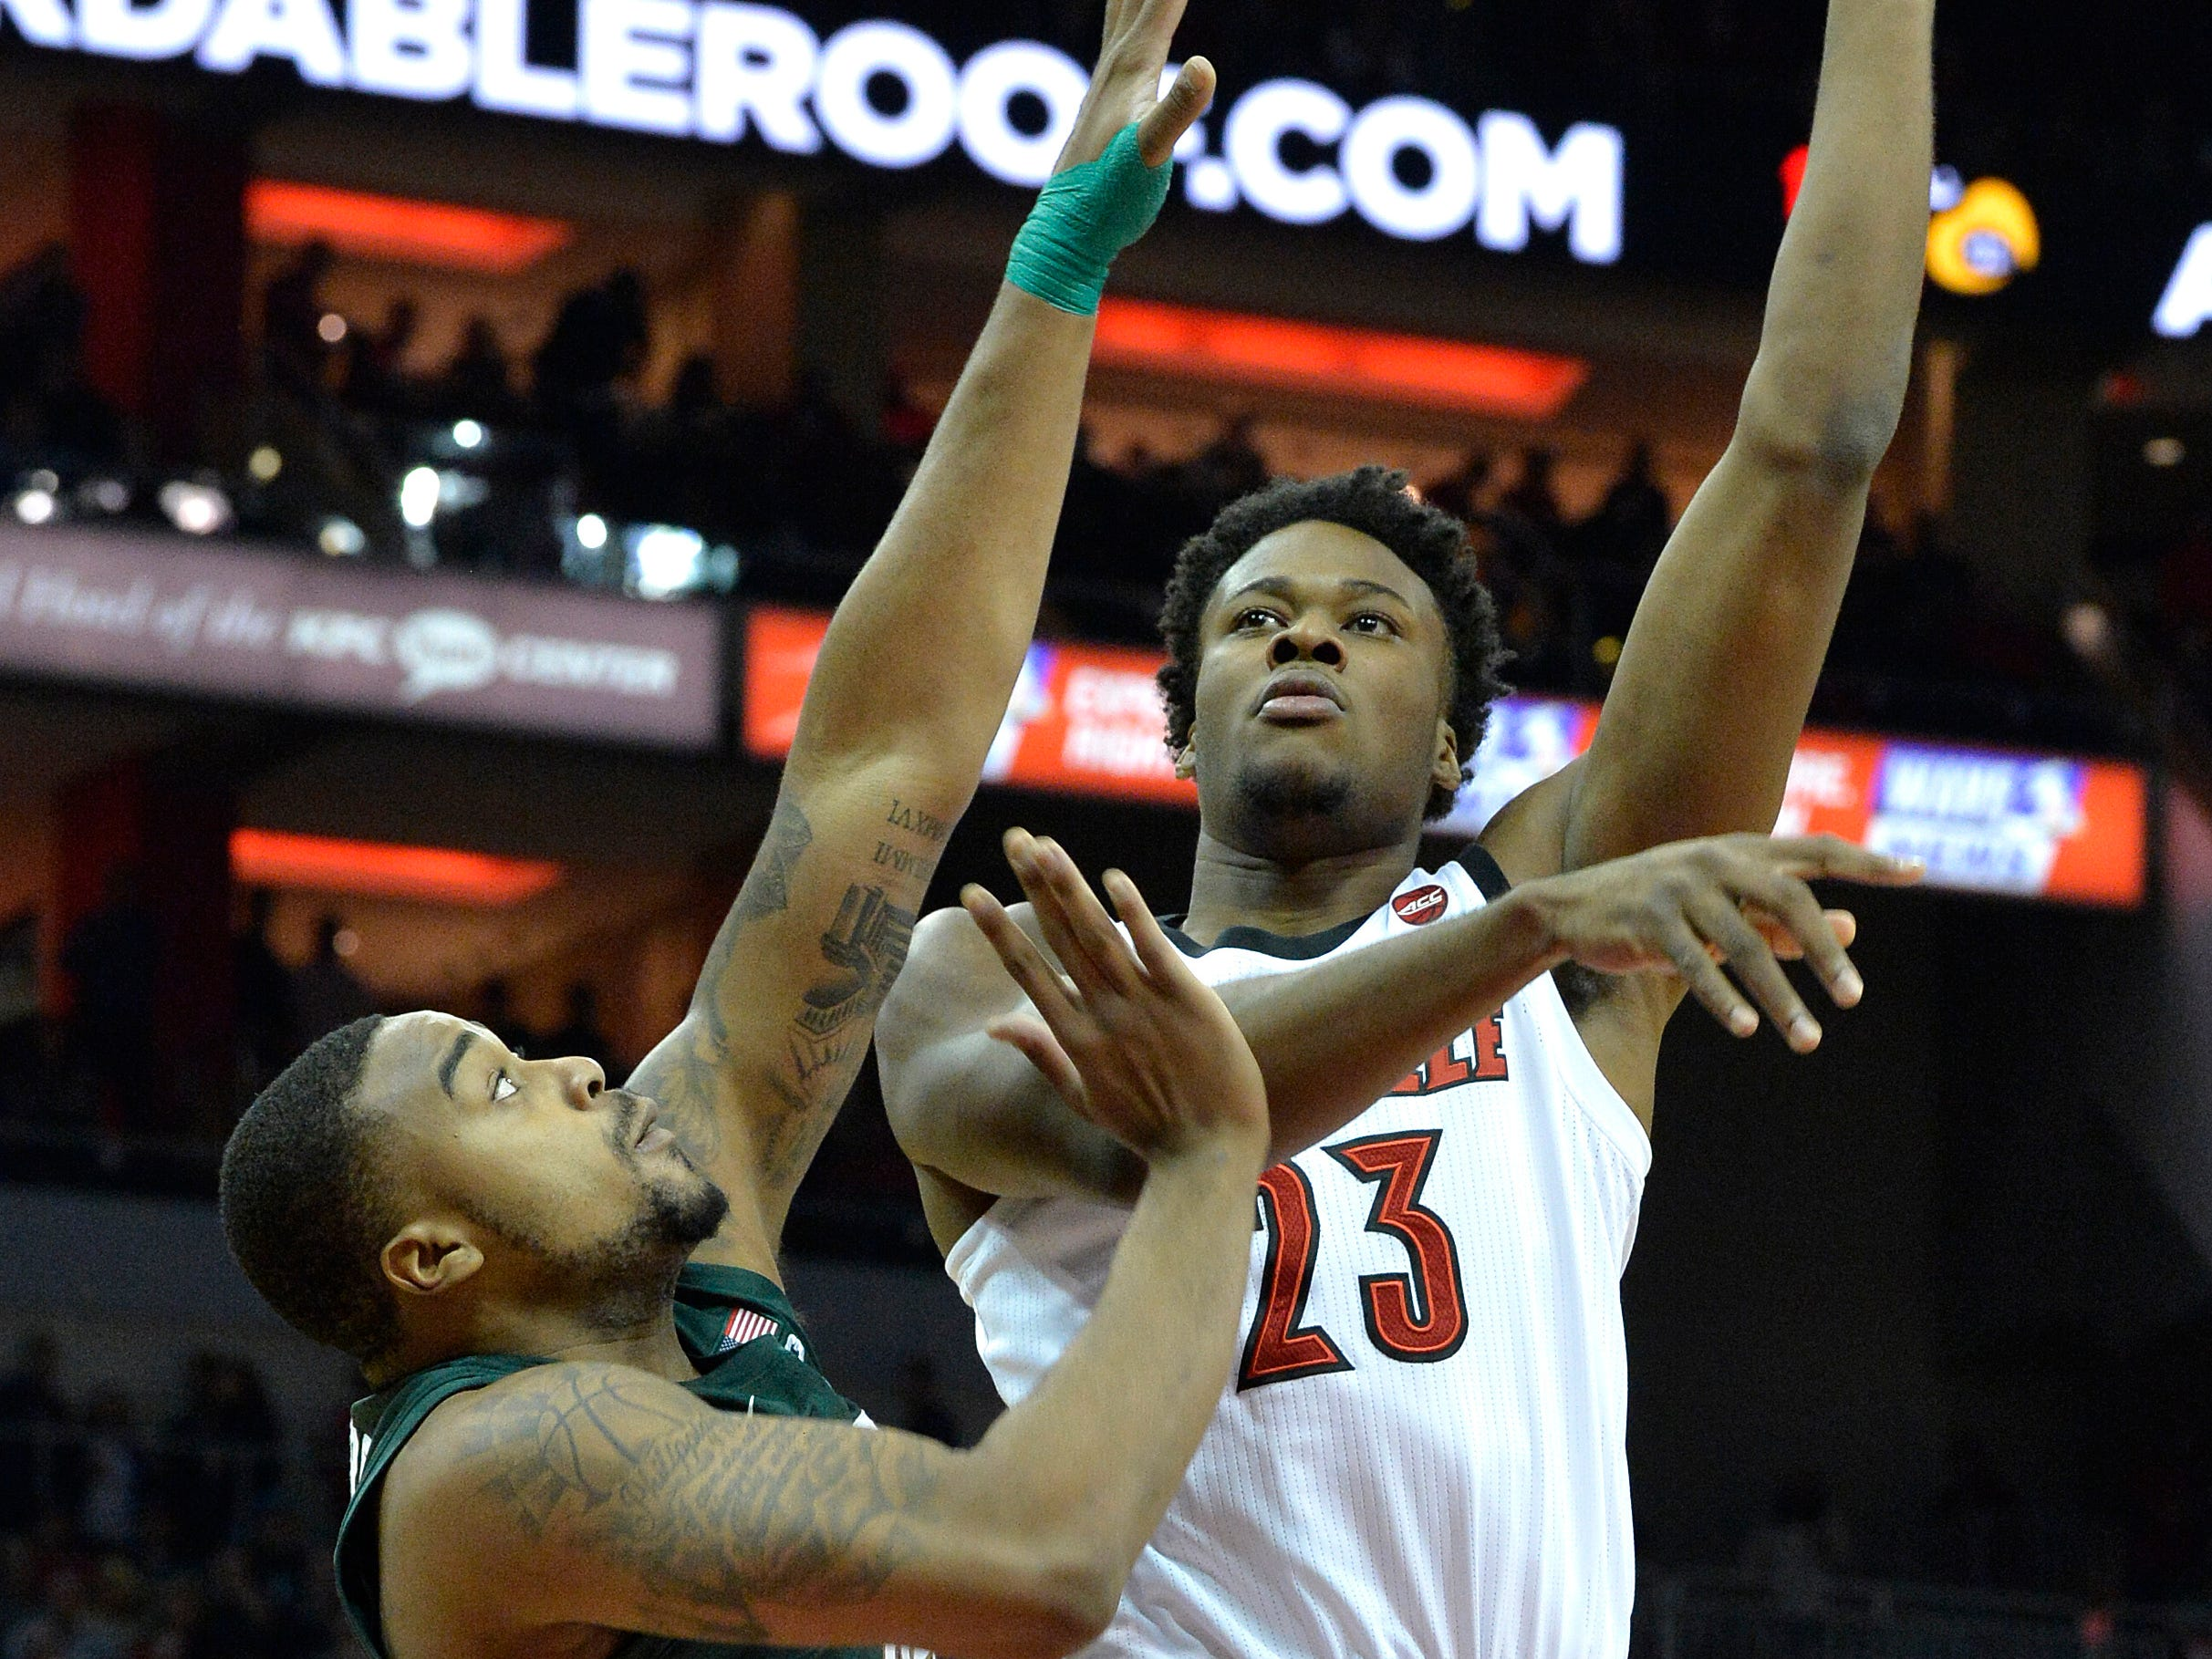 Louisville center Steven Enoch (23) shoots over the defense of Michigan State forward Nick Ward (44) during overtime of an NCAA college basketball game, in Louisville, Ky., Tuesday, Nov. 27, 2018. Louisville won 82-78.